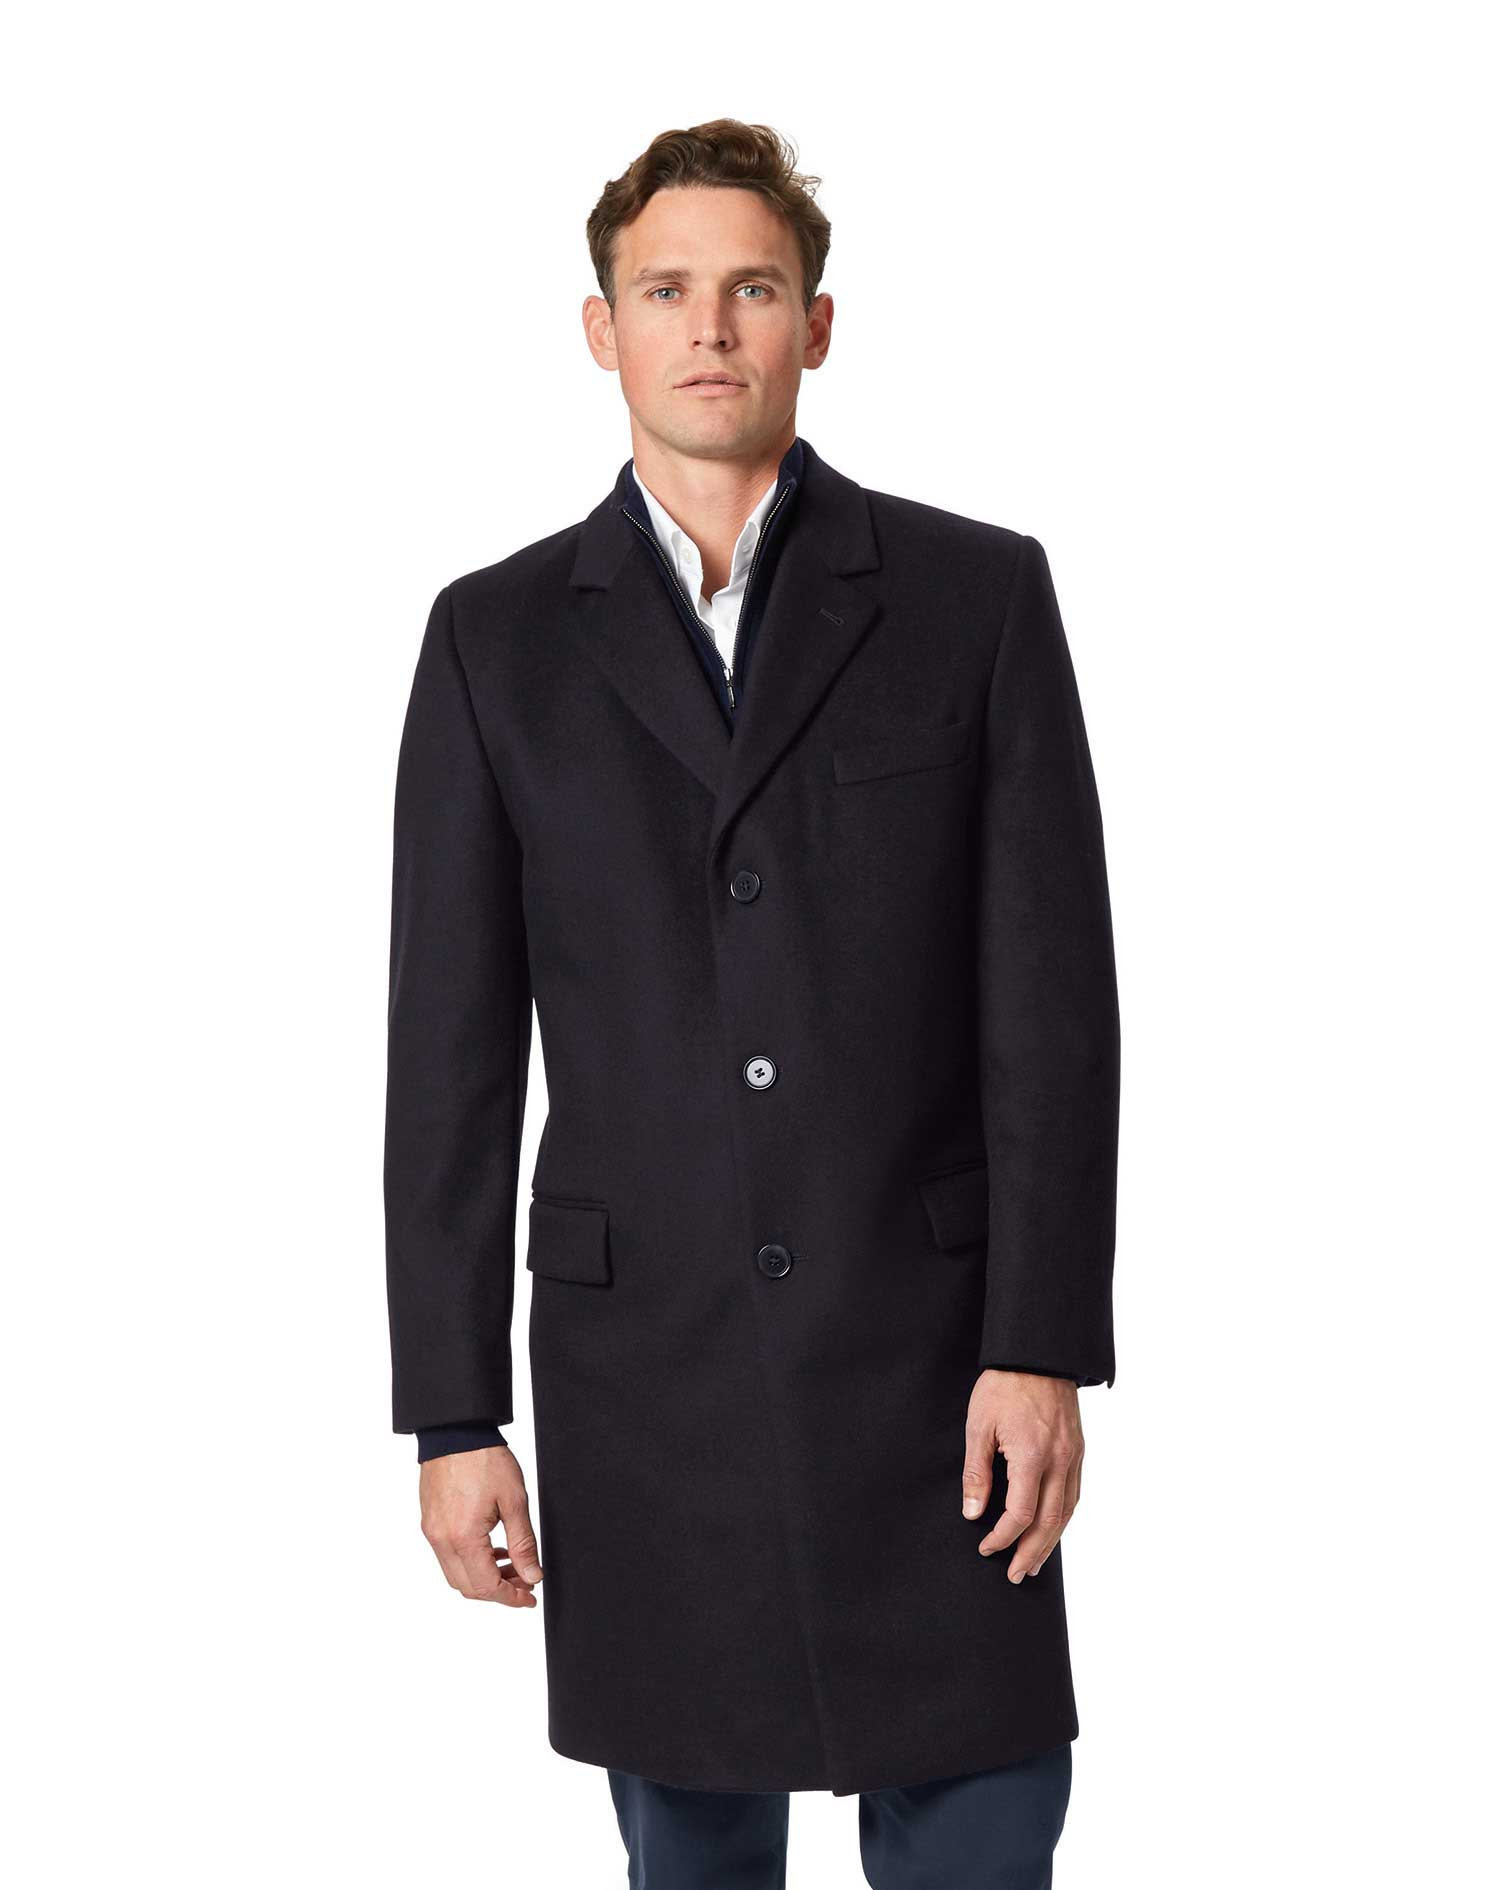 Navy Wool and Cashmere Overcoat Size 44 Long by Charles Tyrwhitt